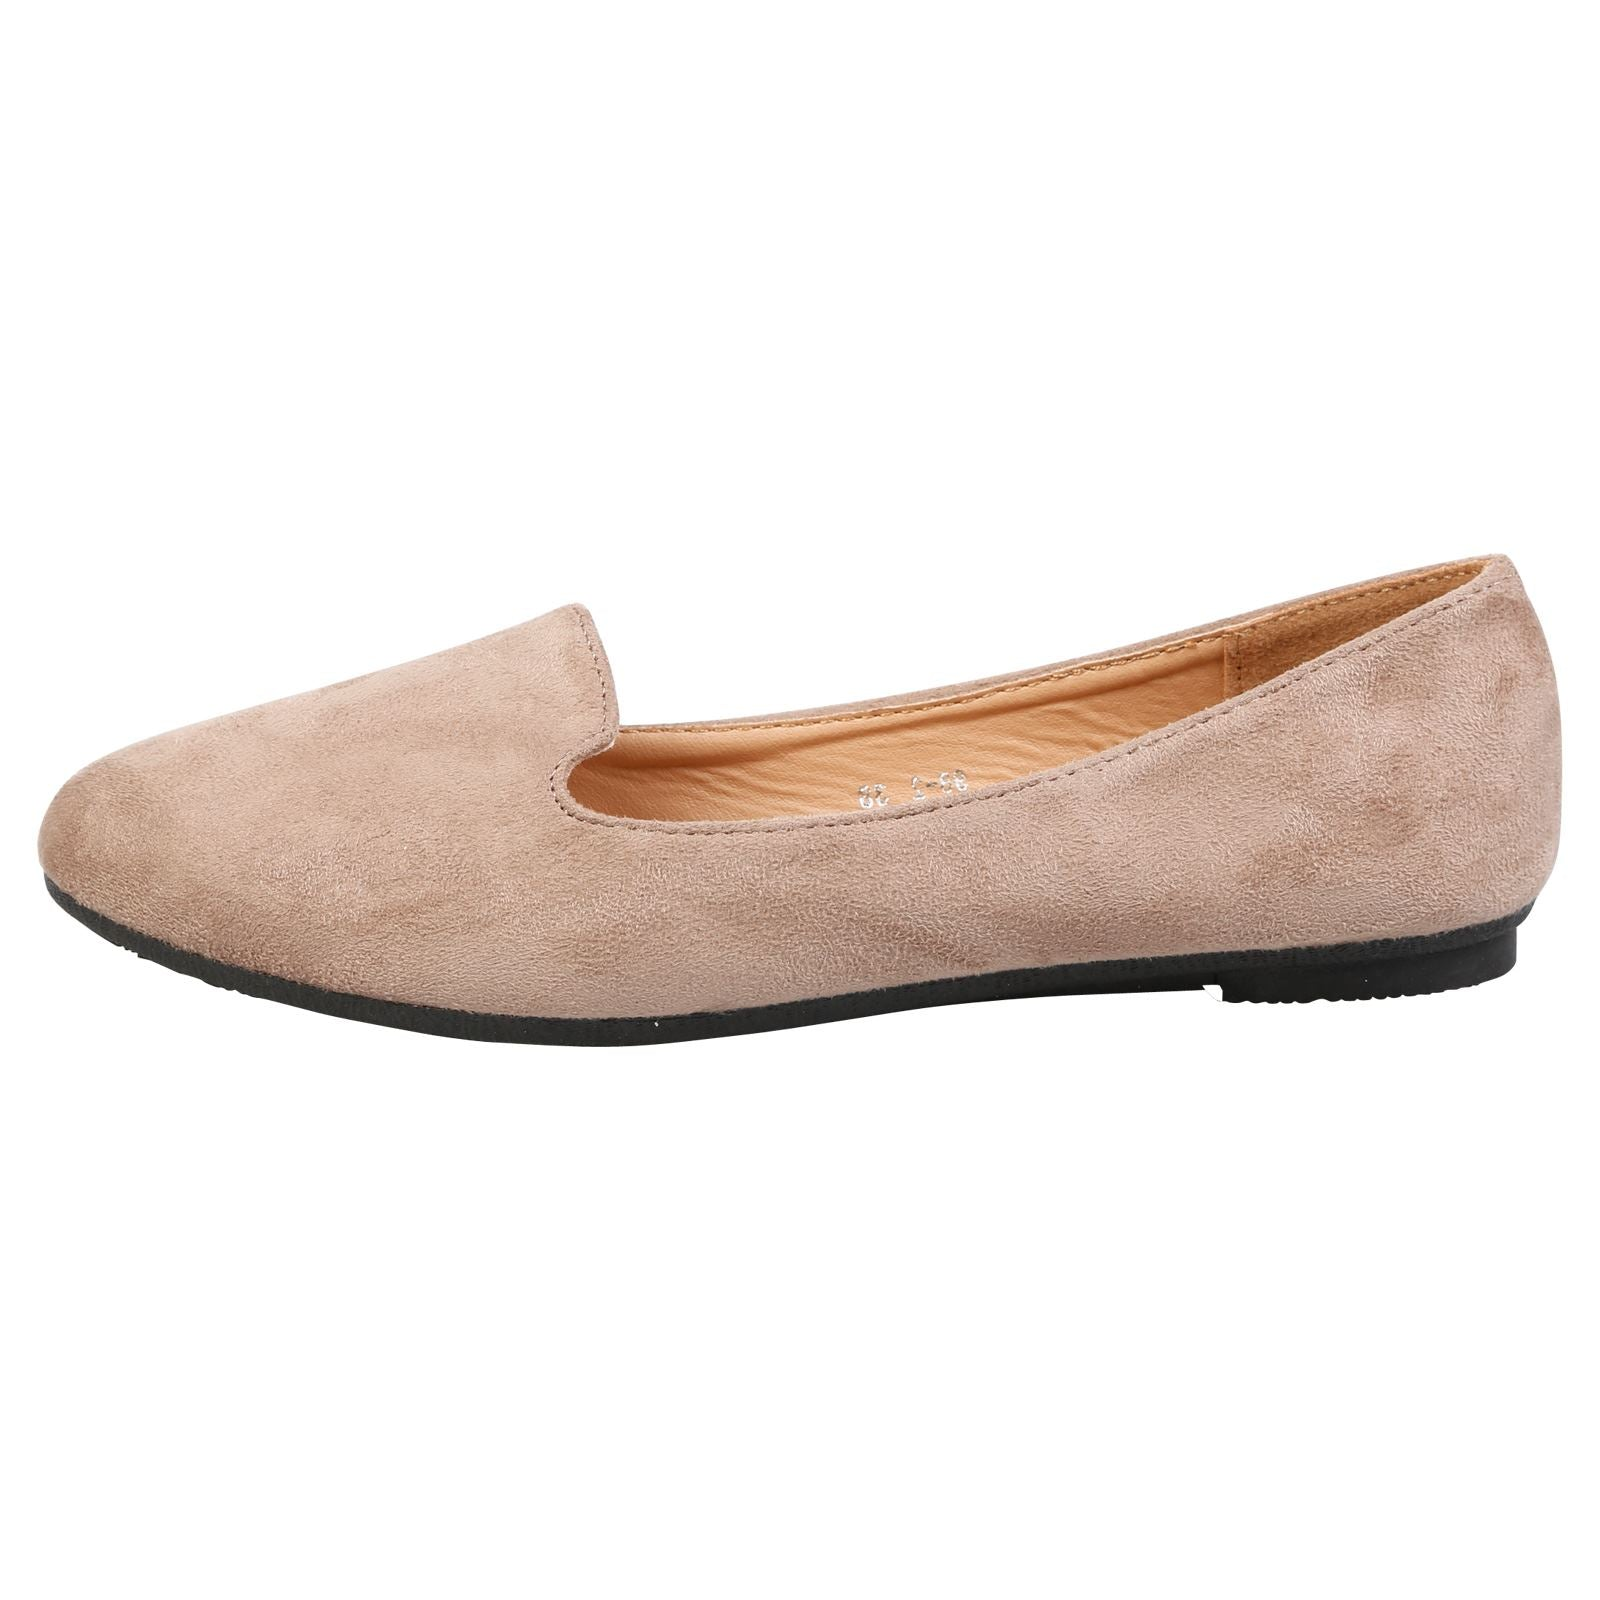 Antonia Loafer Flats in Tan Faux Suede